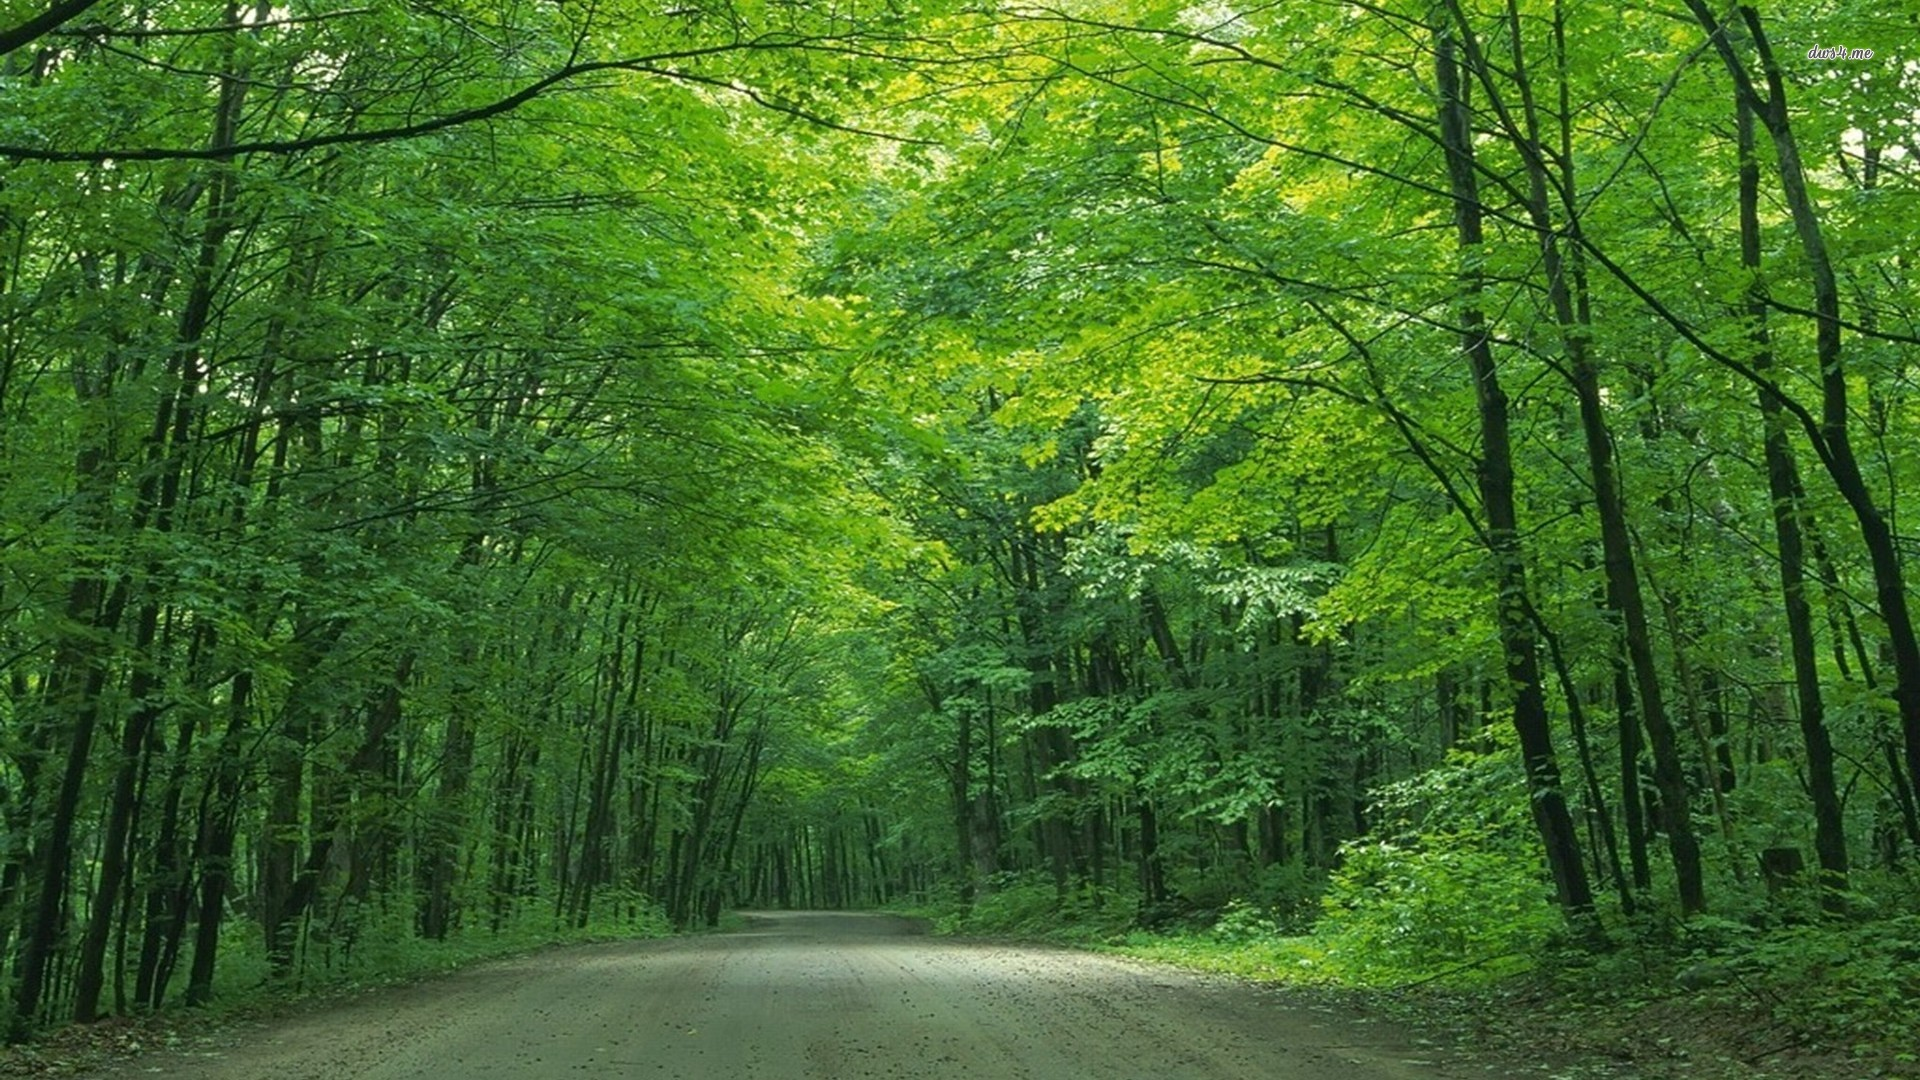 Road under the green trees wallpaper - Nature wallpapers - #20976